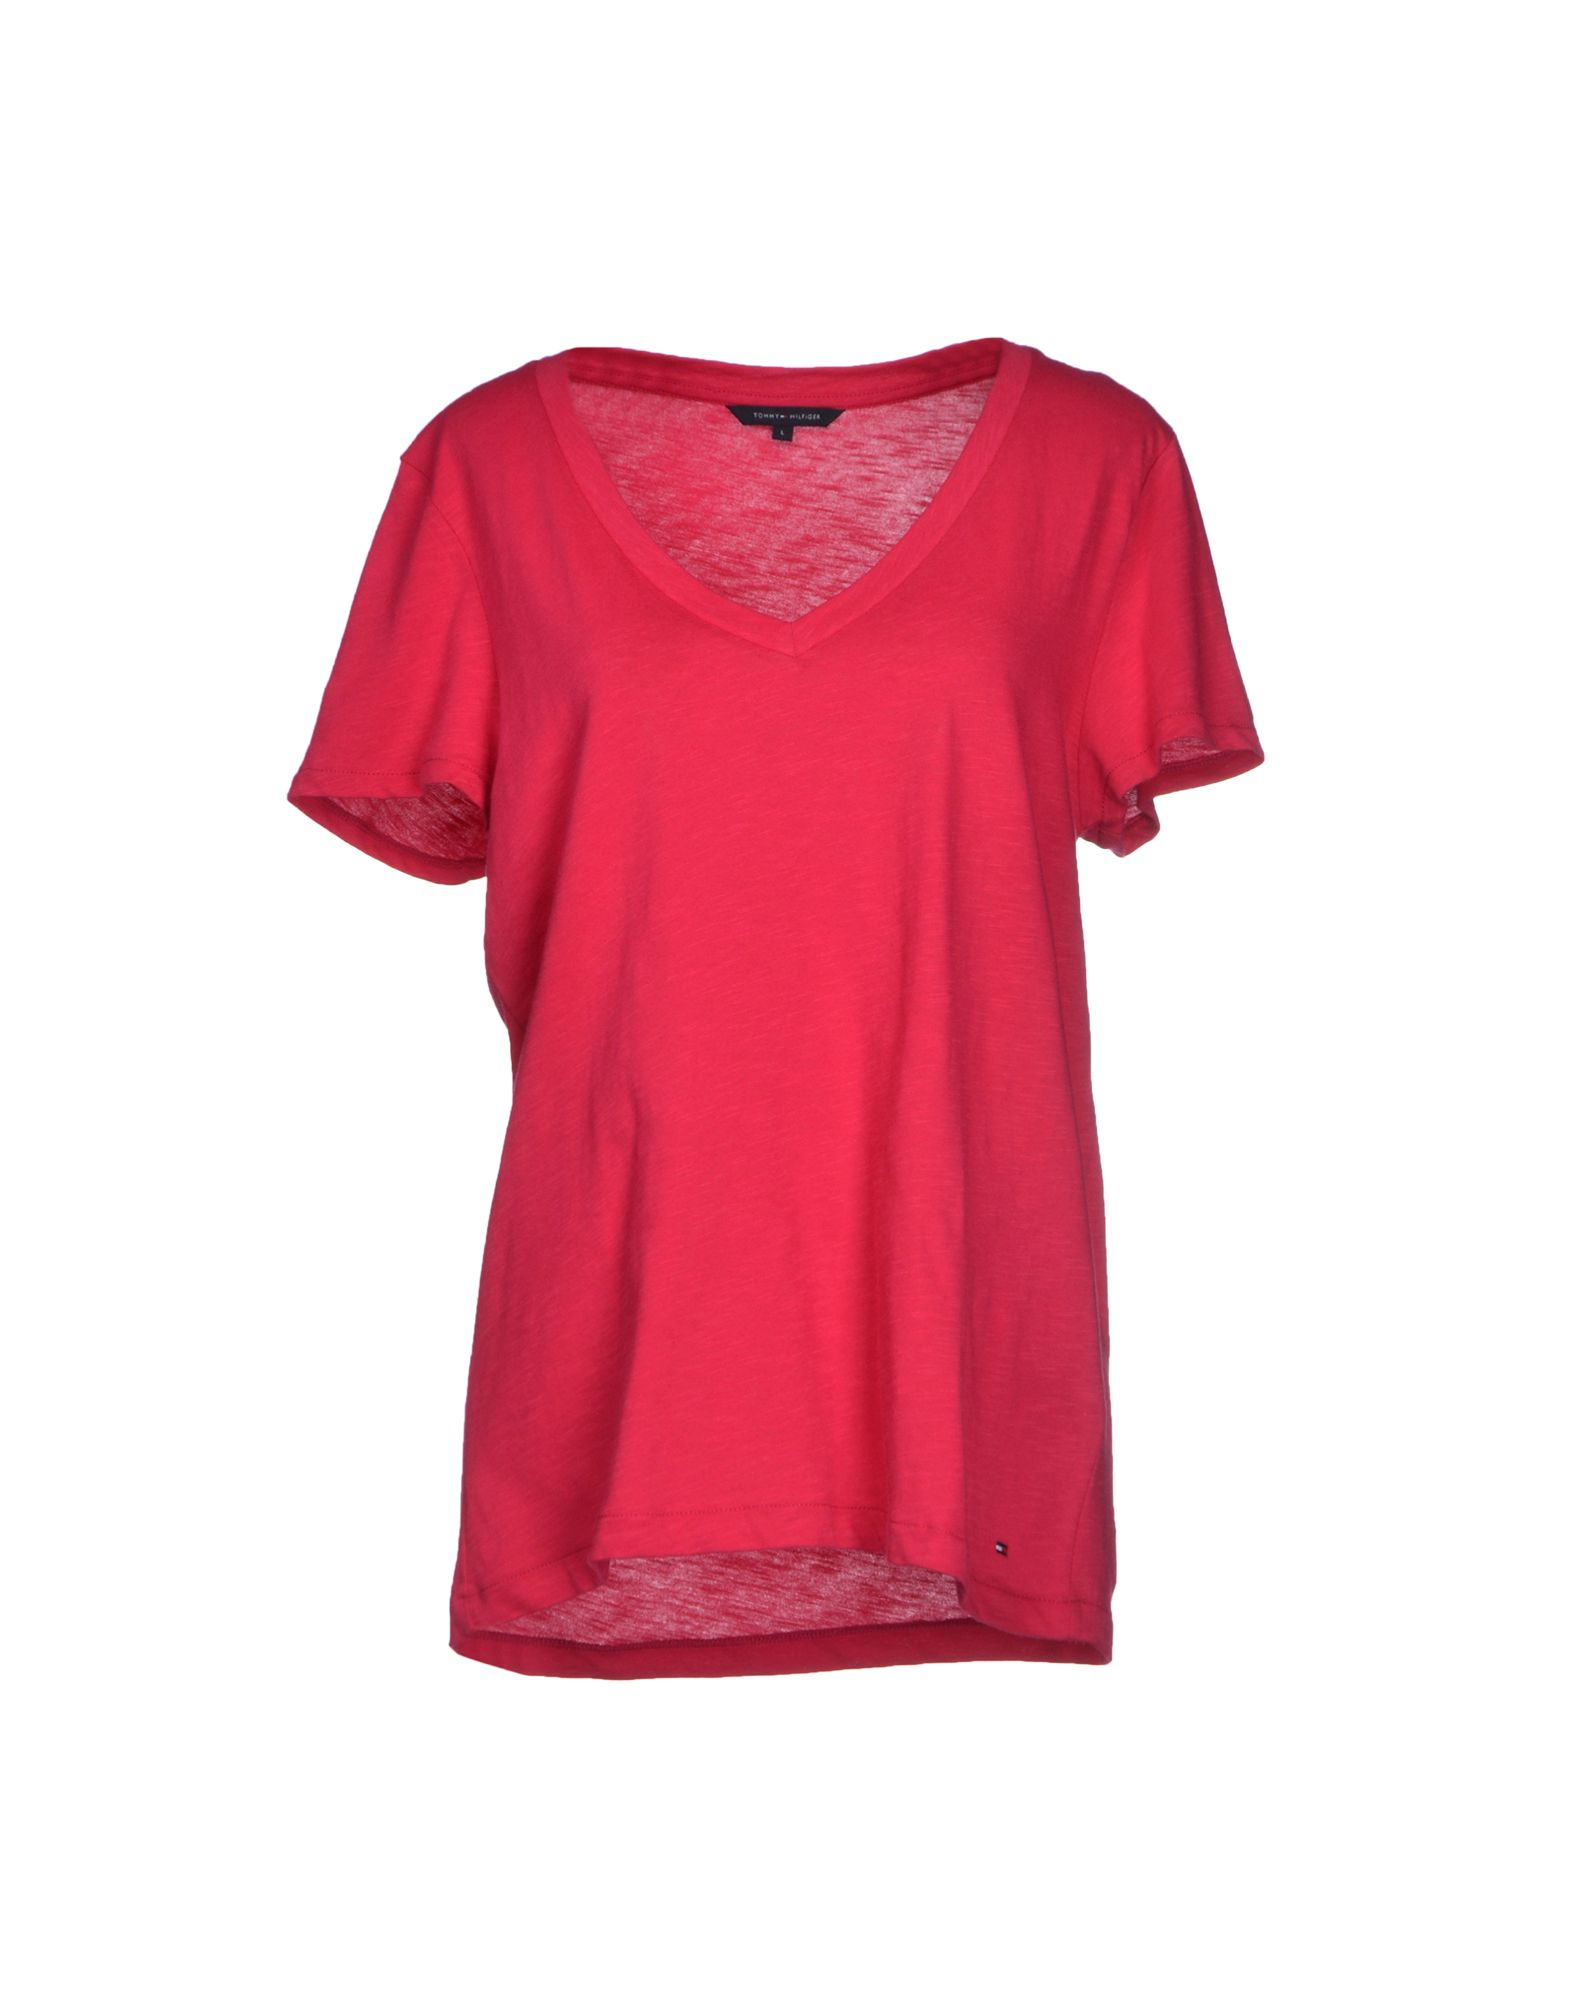 tommy hilfiger t shirt in purple fuchsia lyst. Black Bedroom Furniture Sets. Home Design Ideas